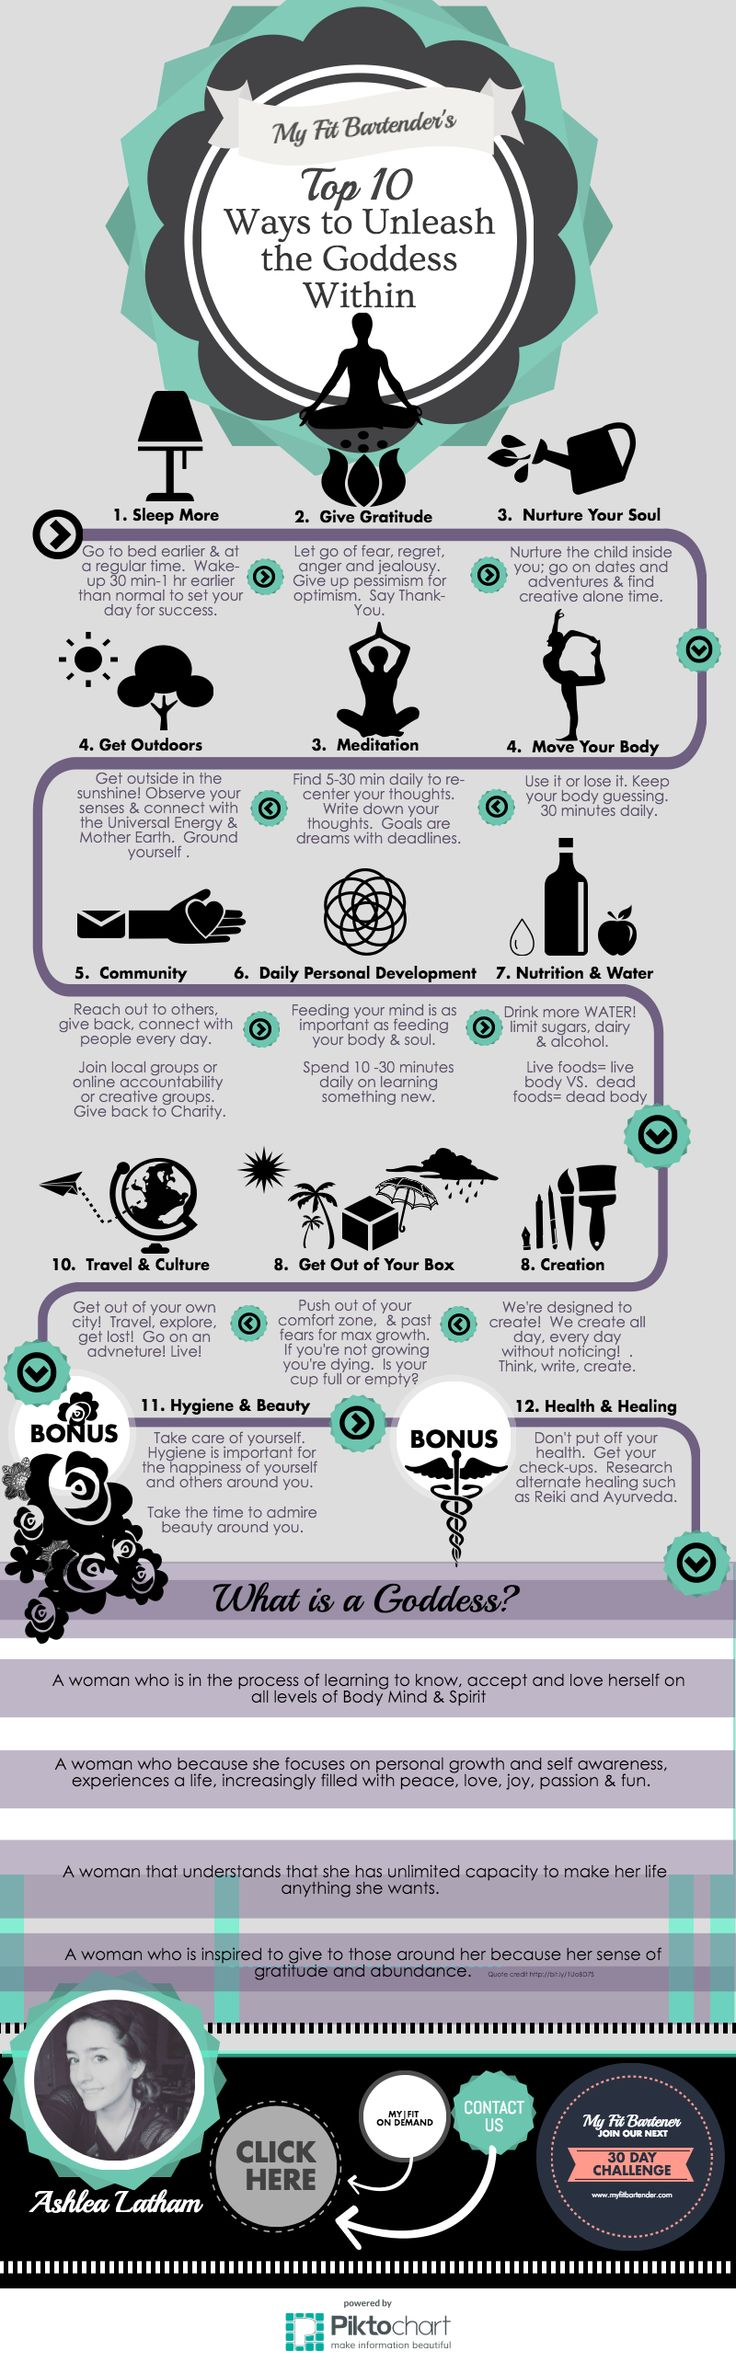 Top 10 Ways to Unleash the Goddess Within You!!     This is an informative piktograph /infographic about the Top Ten ways you can unleash your inner Goddess.  Finding your inner Goddess is all about unlocking your true potential and becoming the best version of yourself.  This infographic is meant to help women focus on the different daily activities that really do make all the difference. www.myfitbartender.com    #bohemian #goddess #hippy #mentality #awareness #yoga #infographic #picture